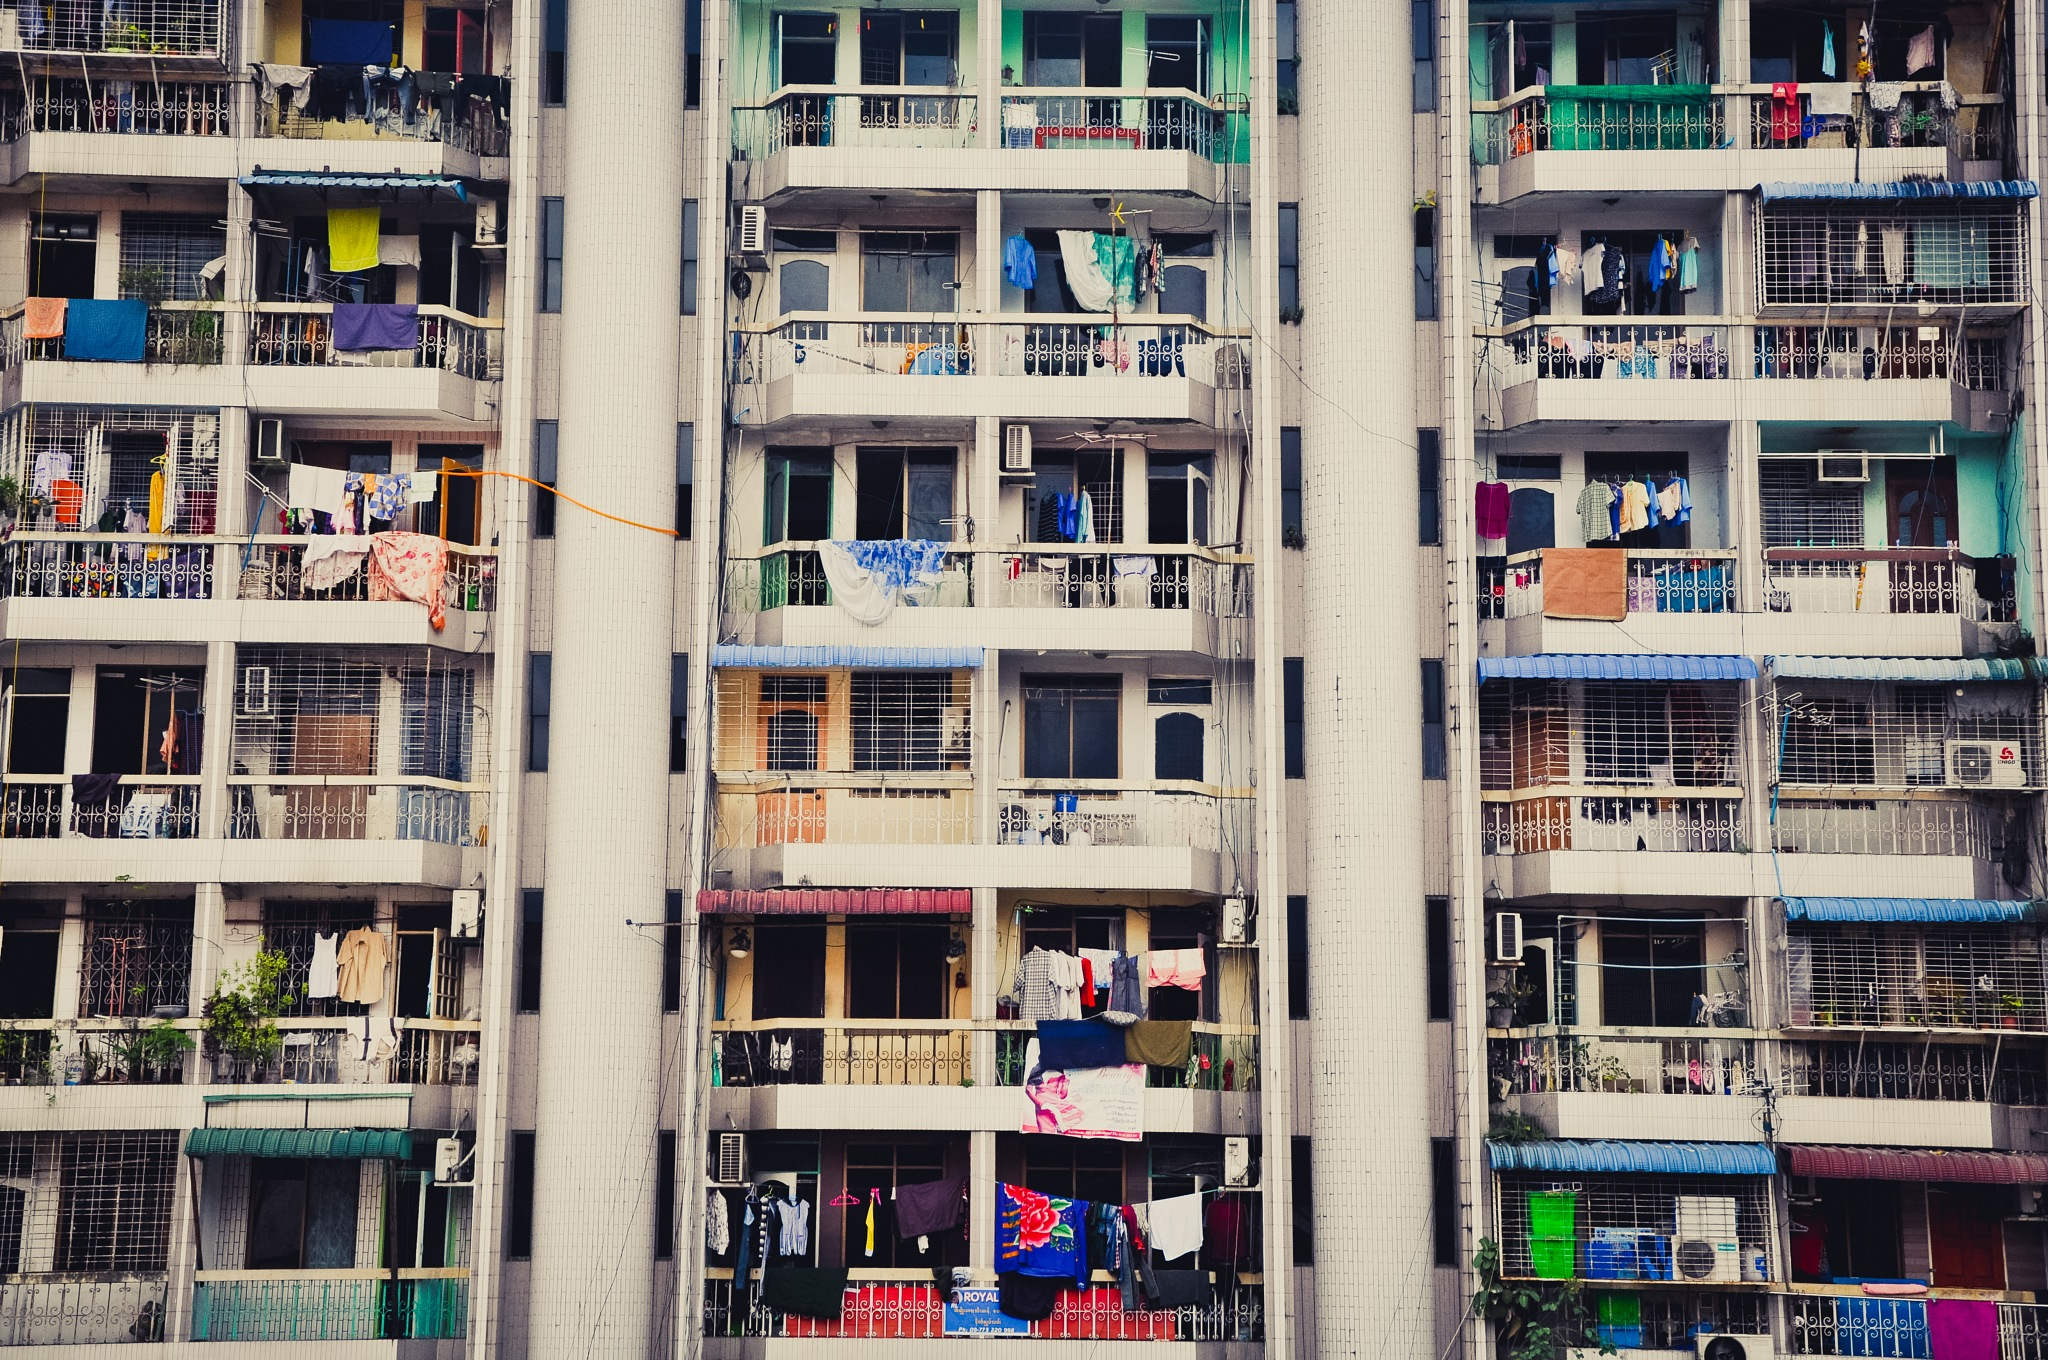 An Apartment In The City (Myanmar) by Jiri Bielicky